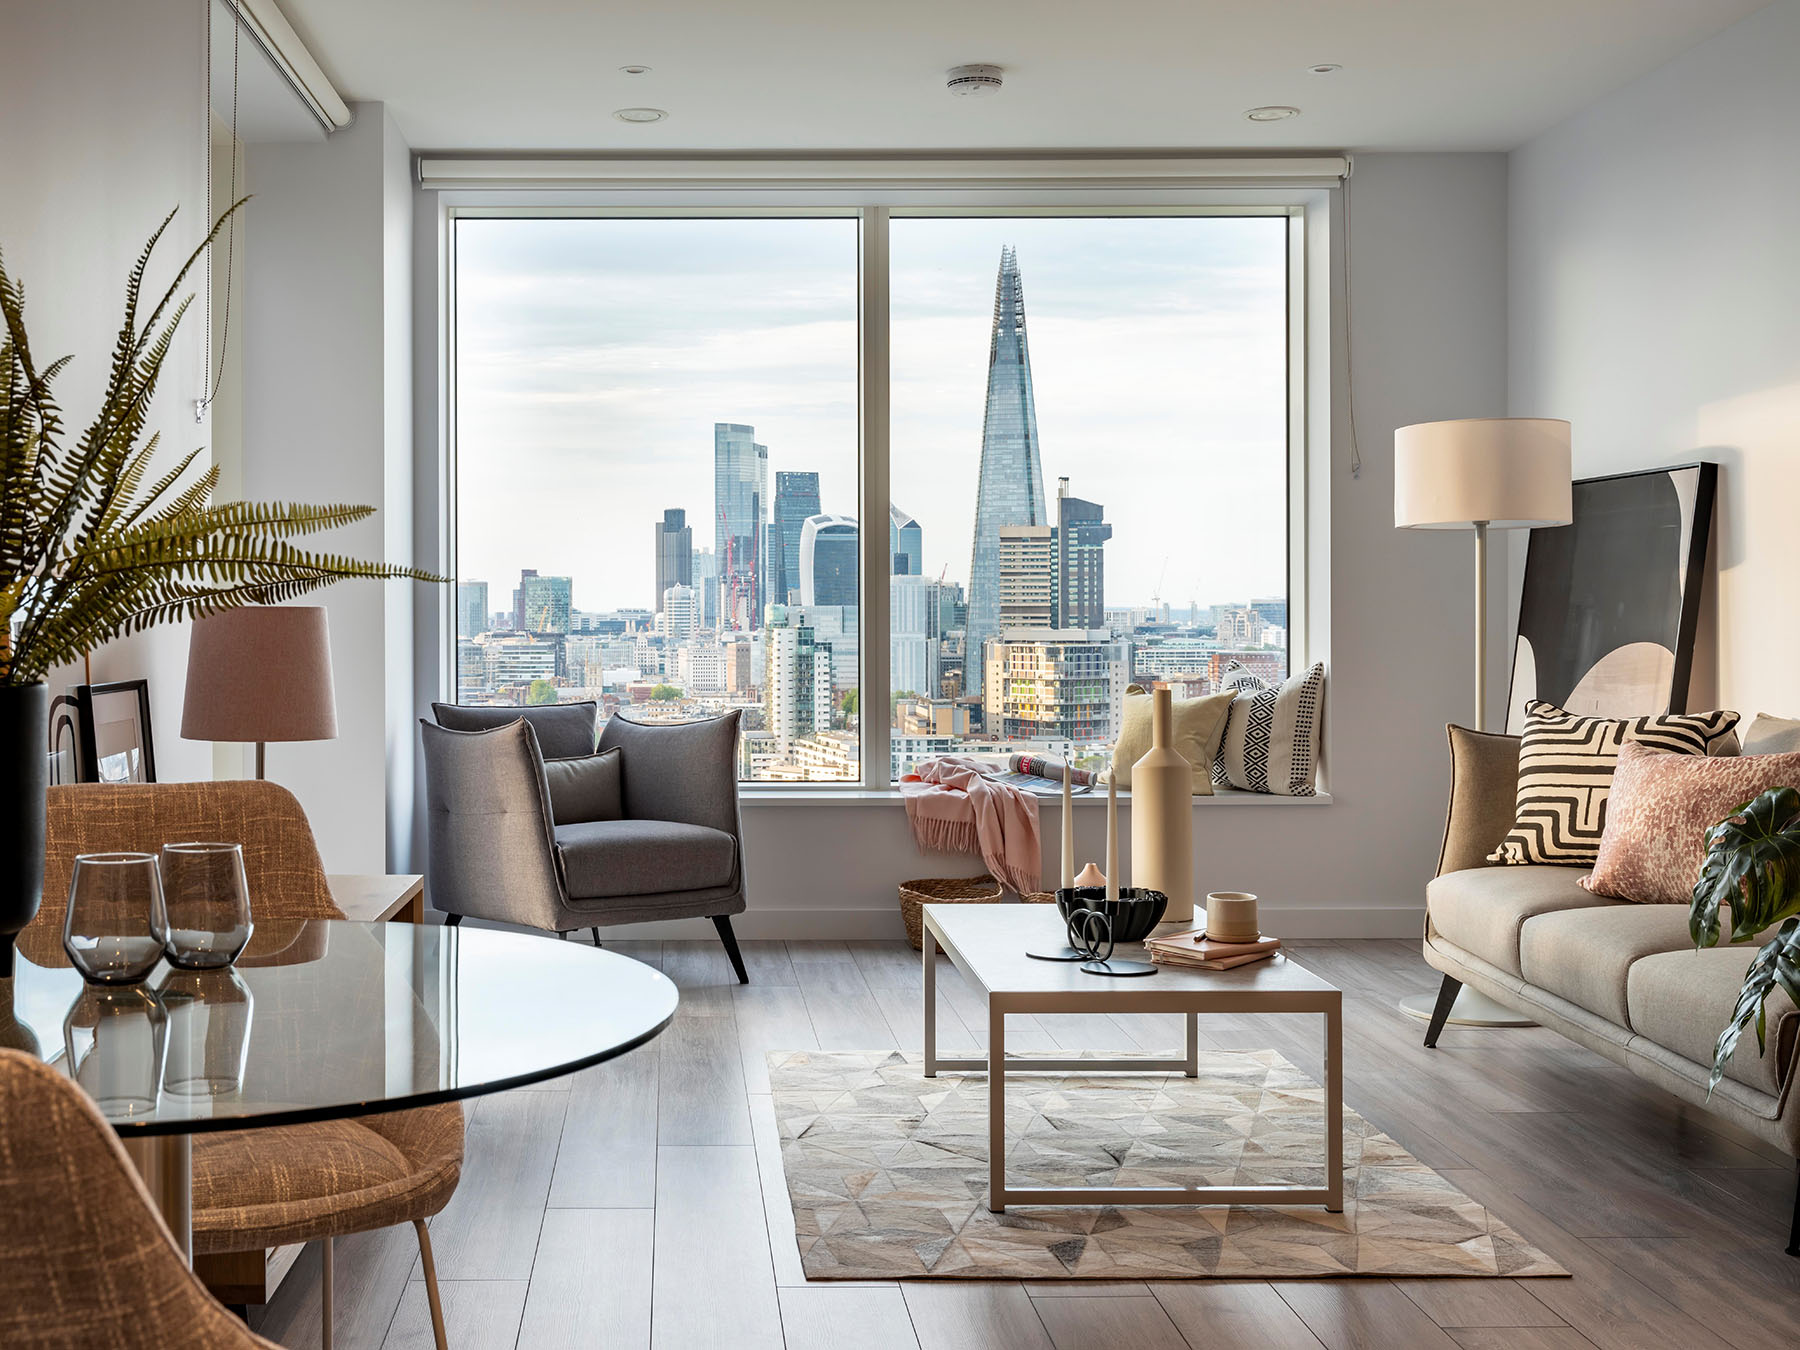 Roomservice by CORT, partnership with Living by Lendlease